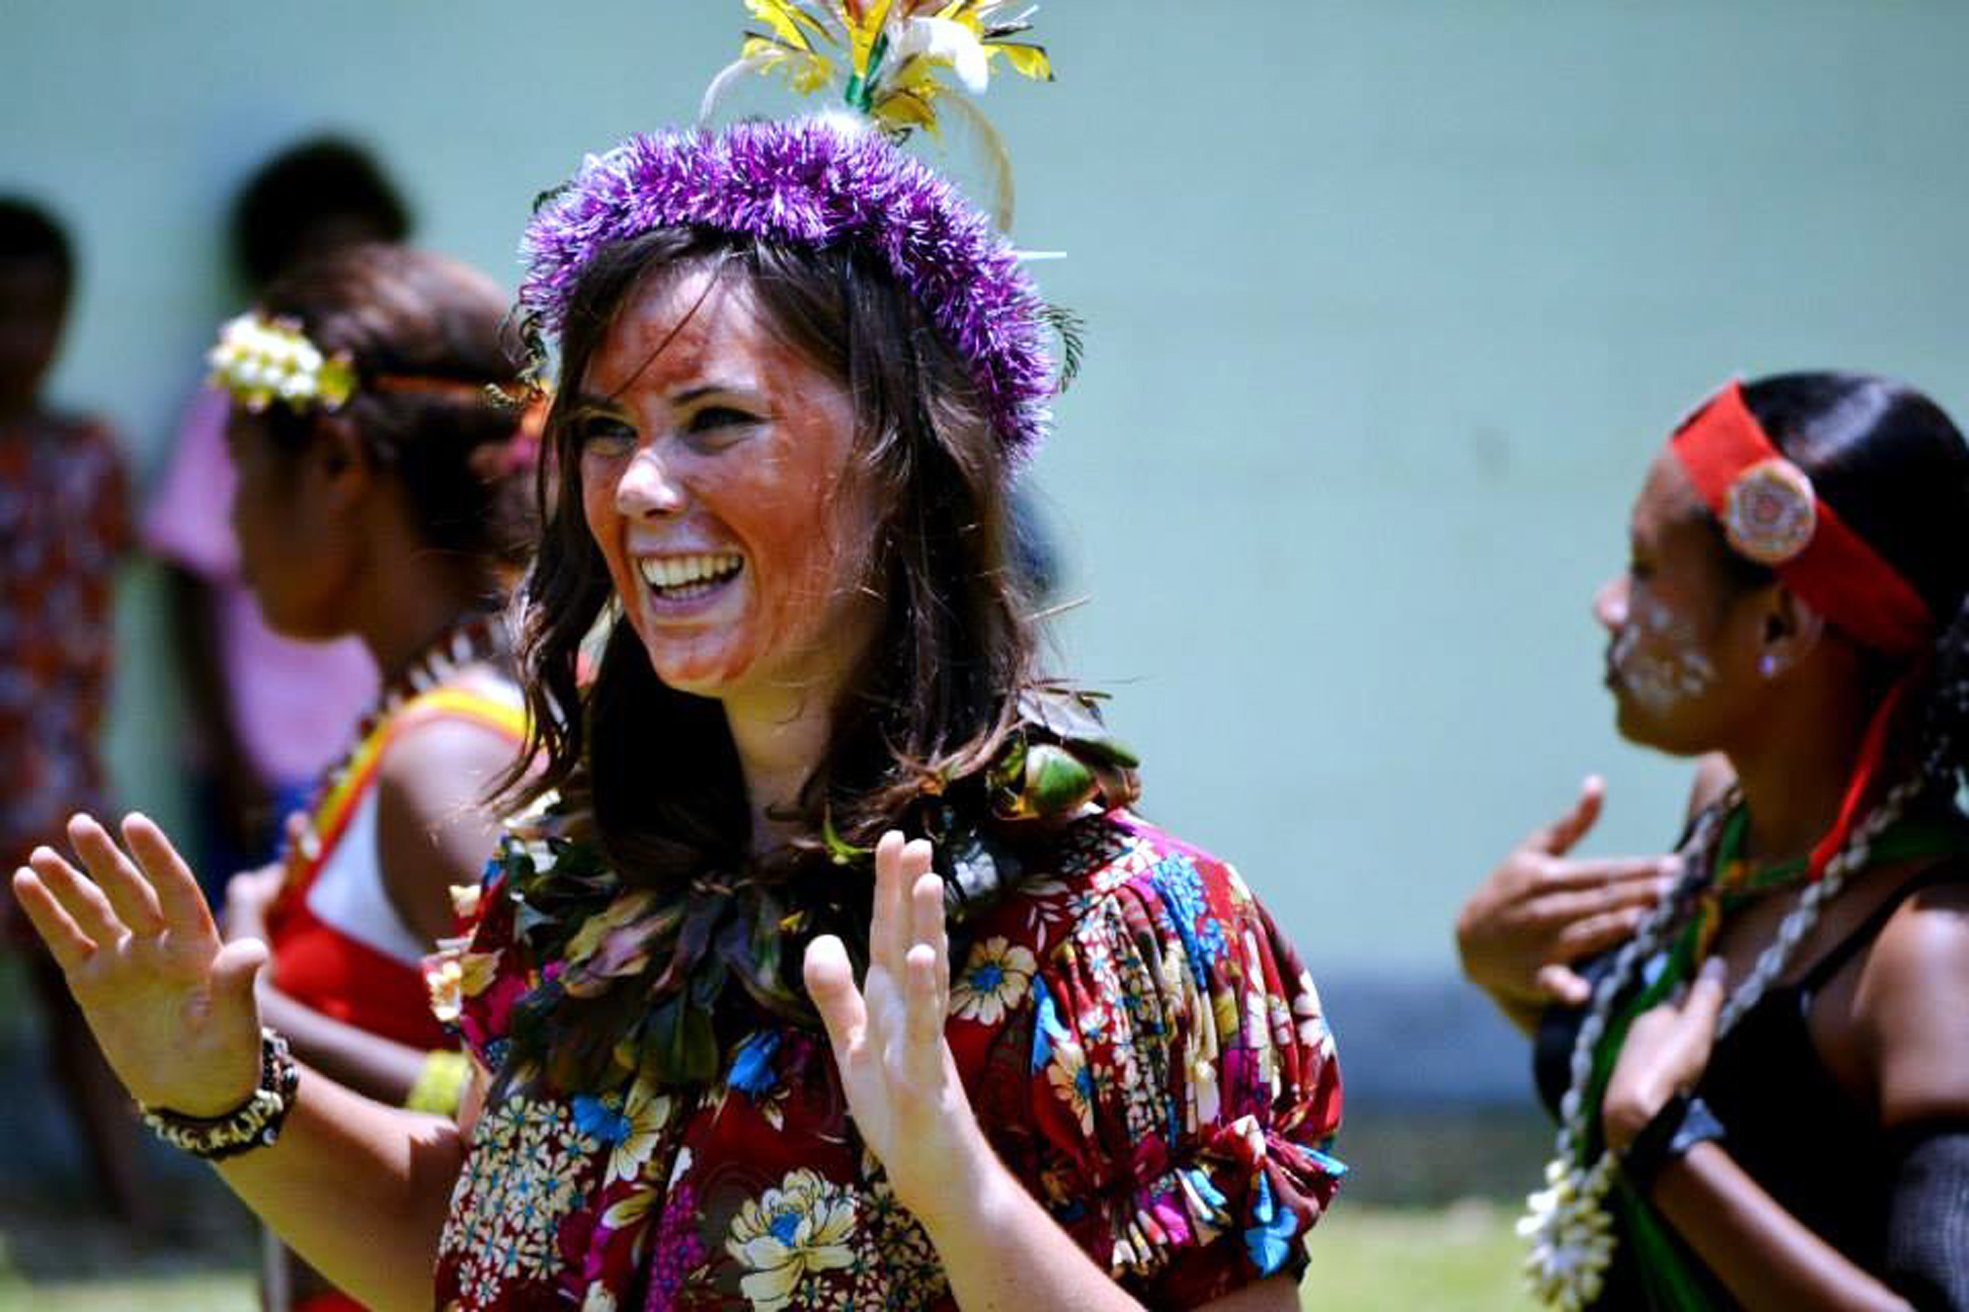 Rosie Paterson-Lima, 2009 Class Act recipient from Kaikorai Valley College, takes part in a dance...